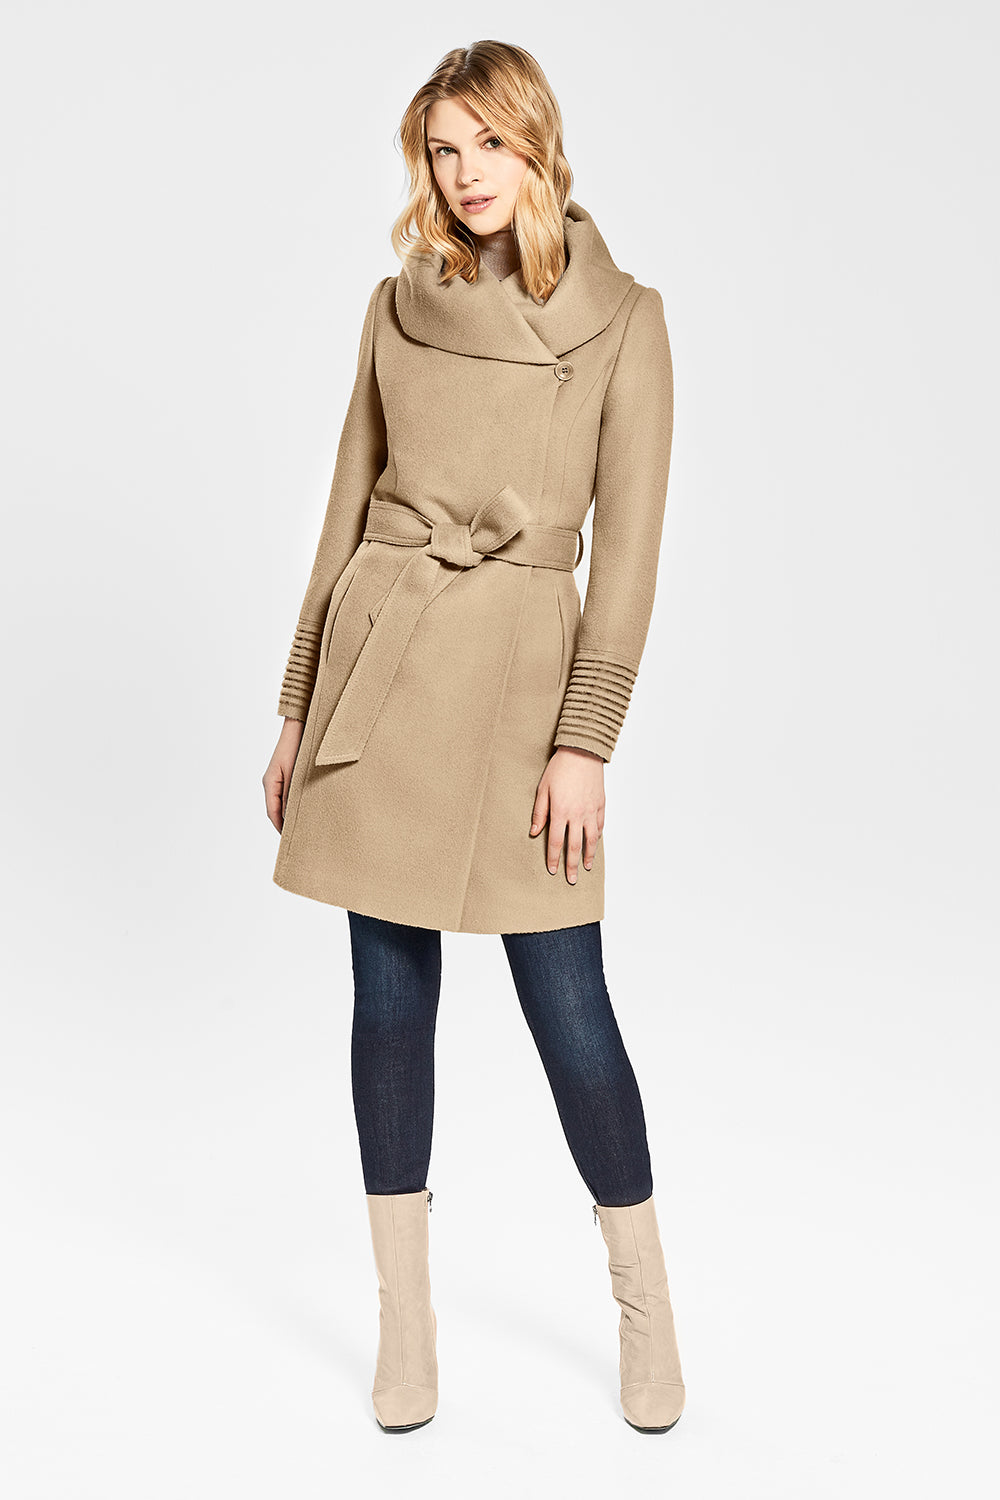 Sentaler Mid Length Hooded Wrap Coat featured in Baby Alpaca and available in Camel. Seen from front.